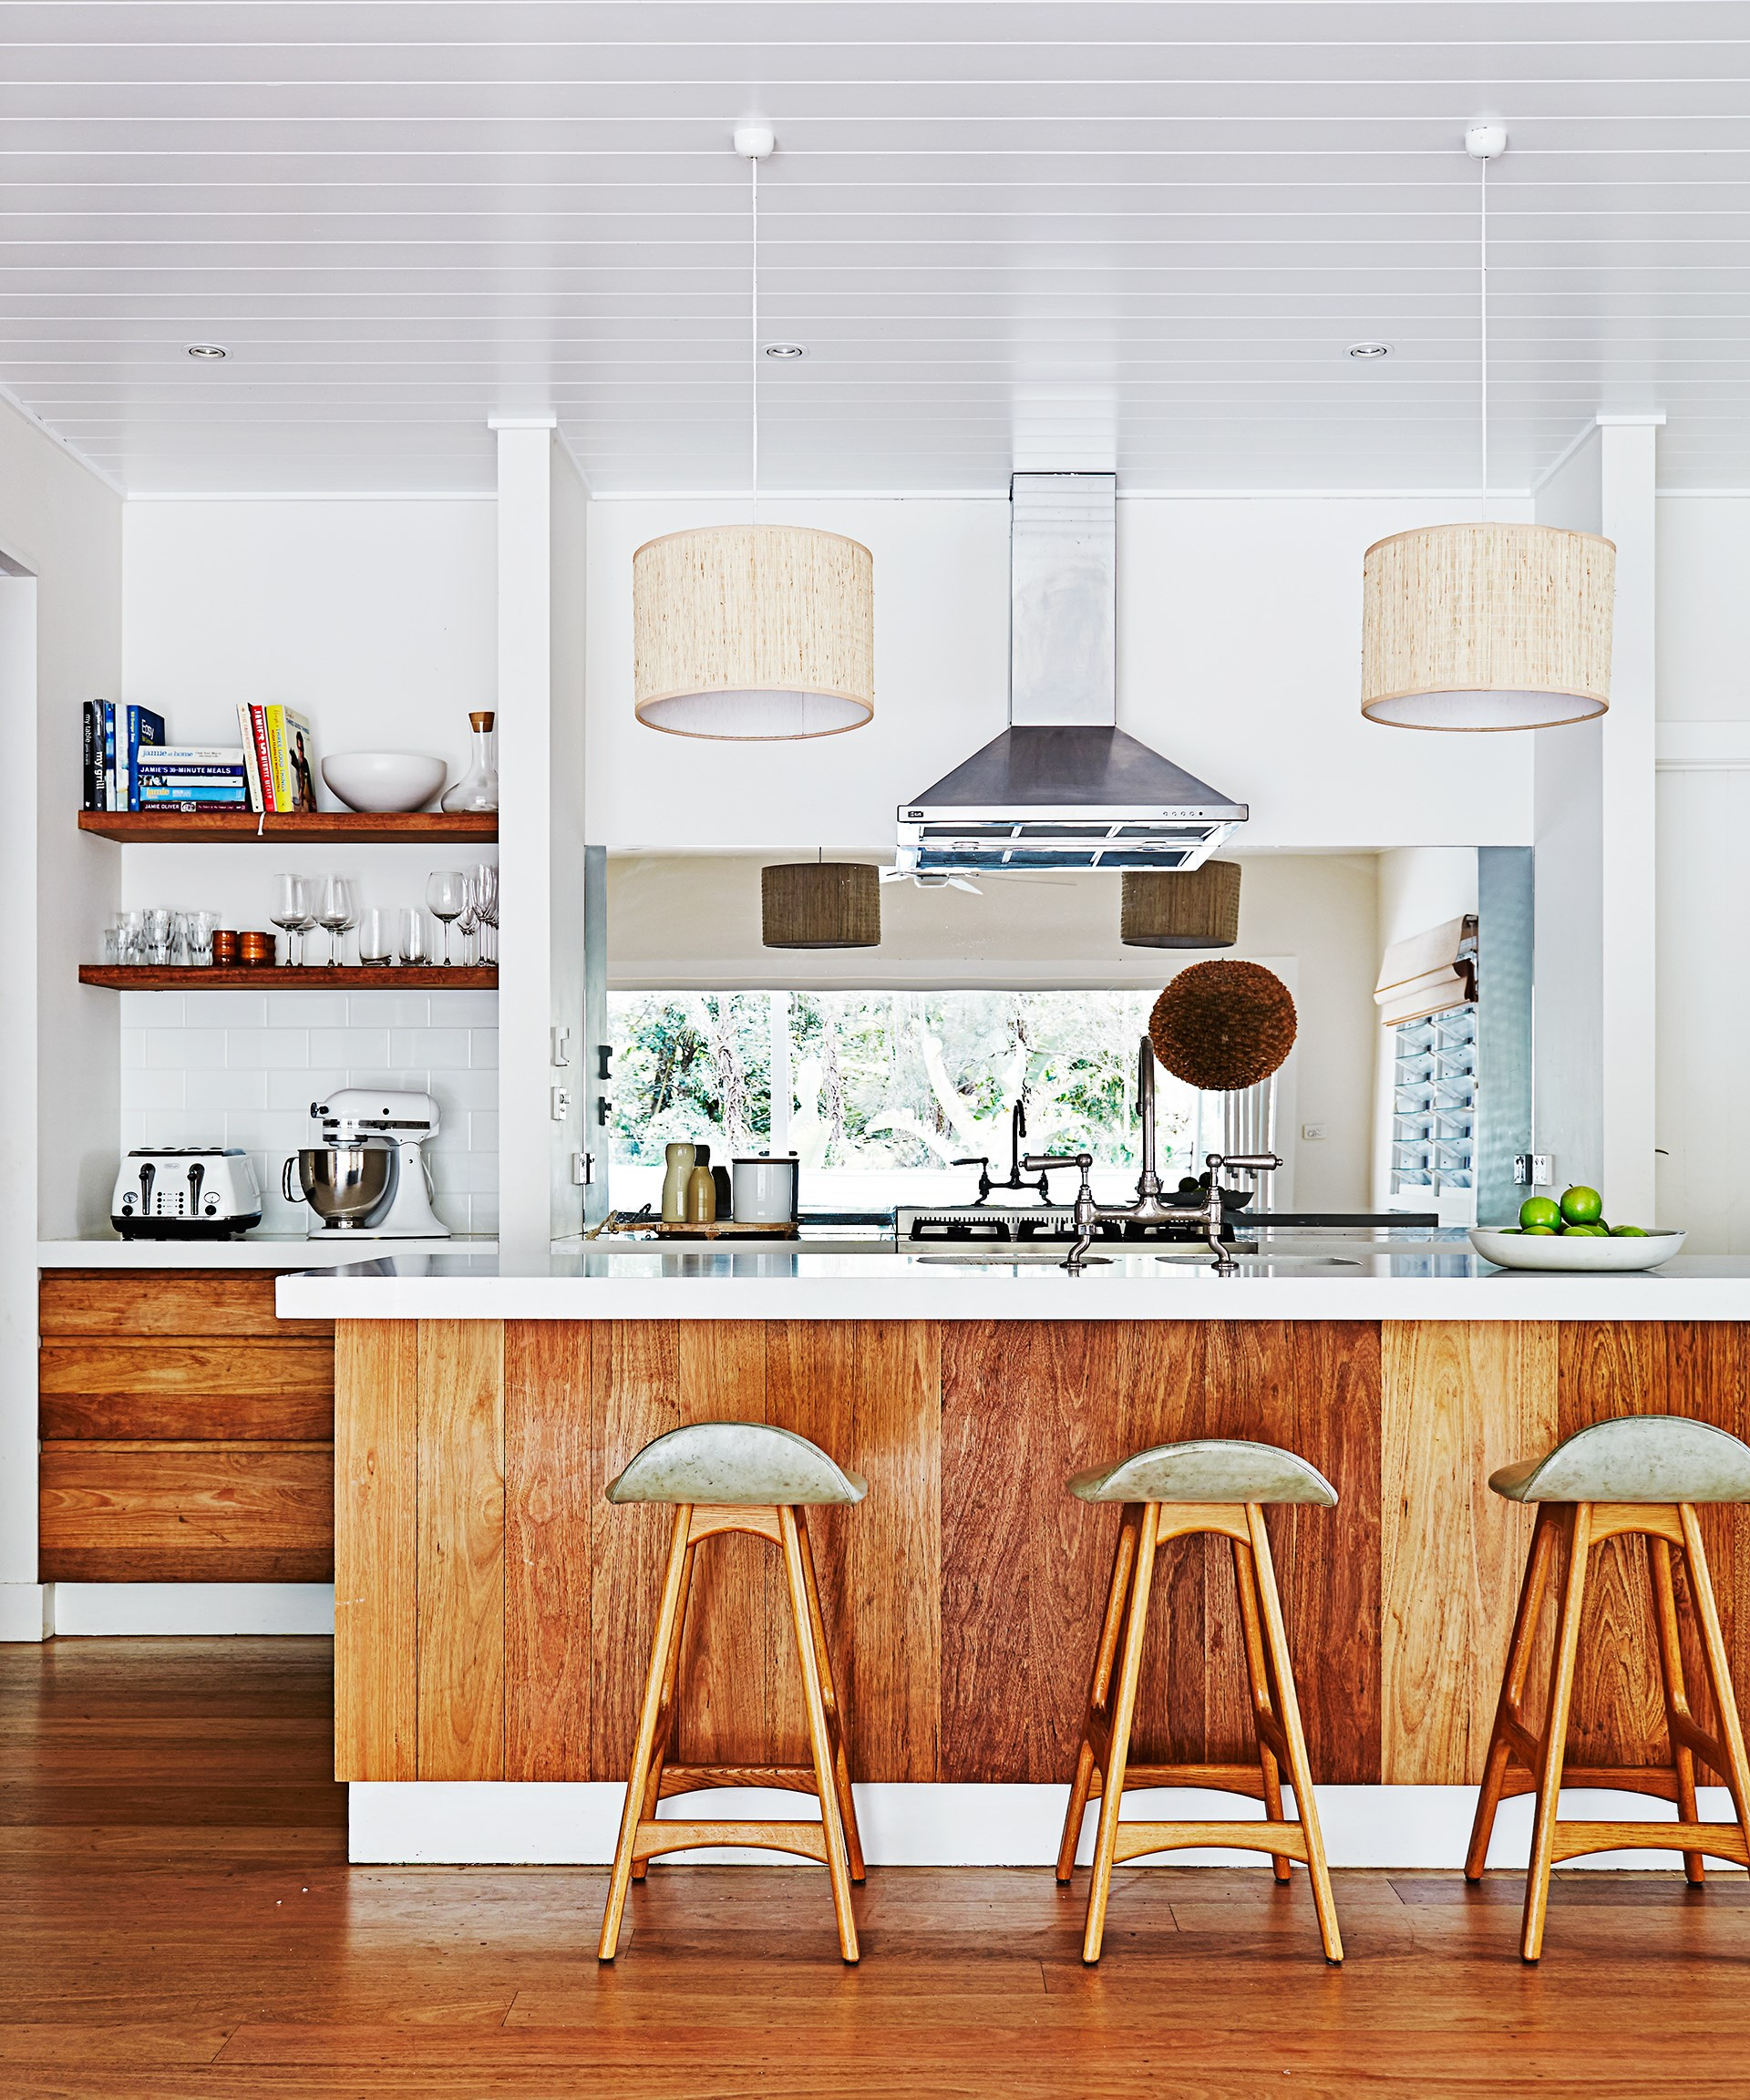 The kitchen in this [backpackers-turned-family home](http://www.homestolove.com.au/gallery-kimberly-and-stephens-byron-bay-beach-house-1660) is decked out in American oak for a warm coastal vibe. The Erik Buch stools from Great Dane Furniture match perfectly!